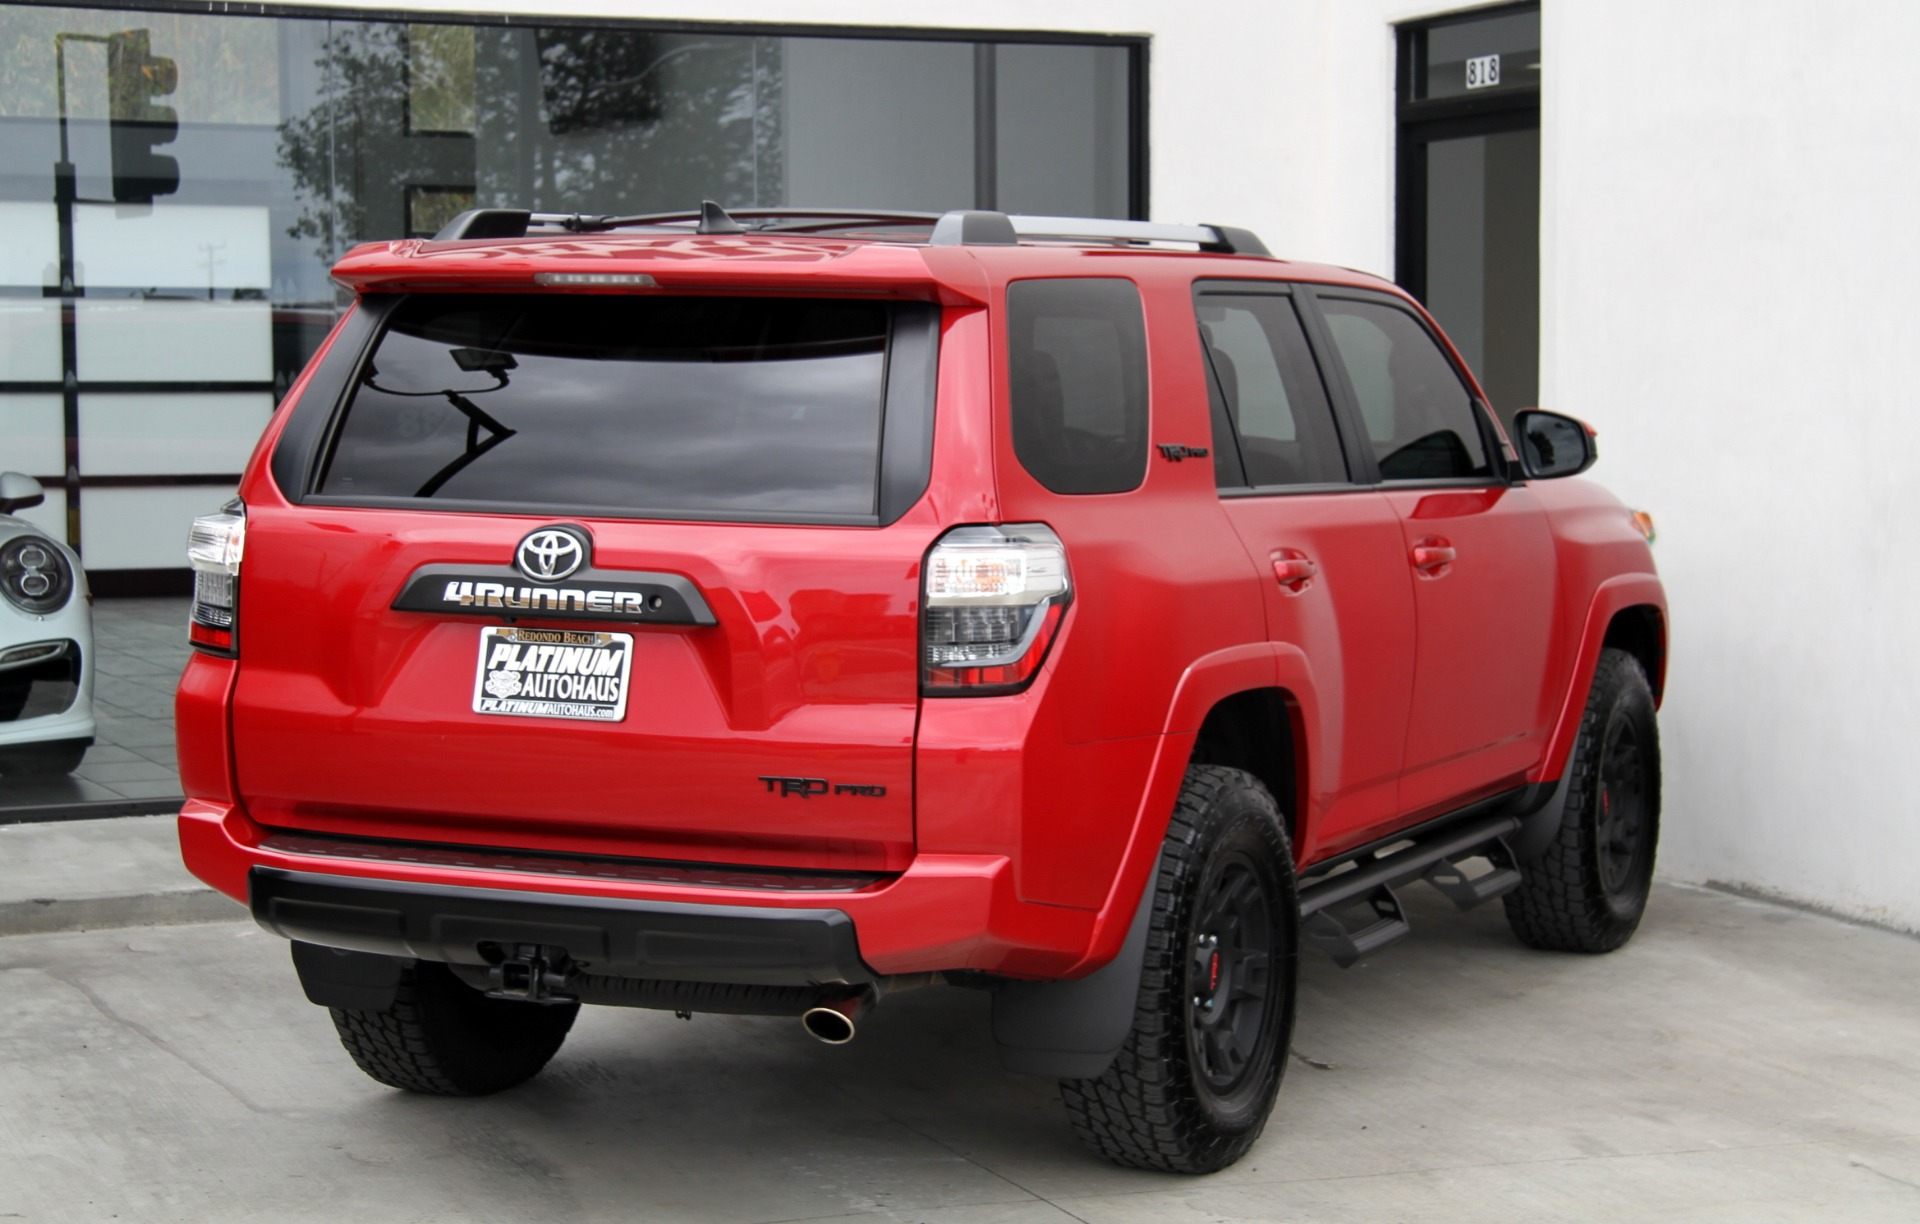 2017 Toyota 4runner Trd Pro For Sale >> 2017 Toyota 4Runner TRD Pro Stock # 6210 for sale near ...